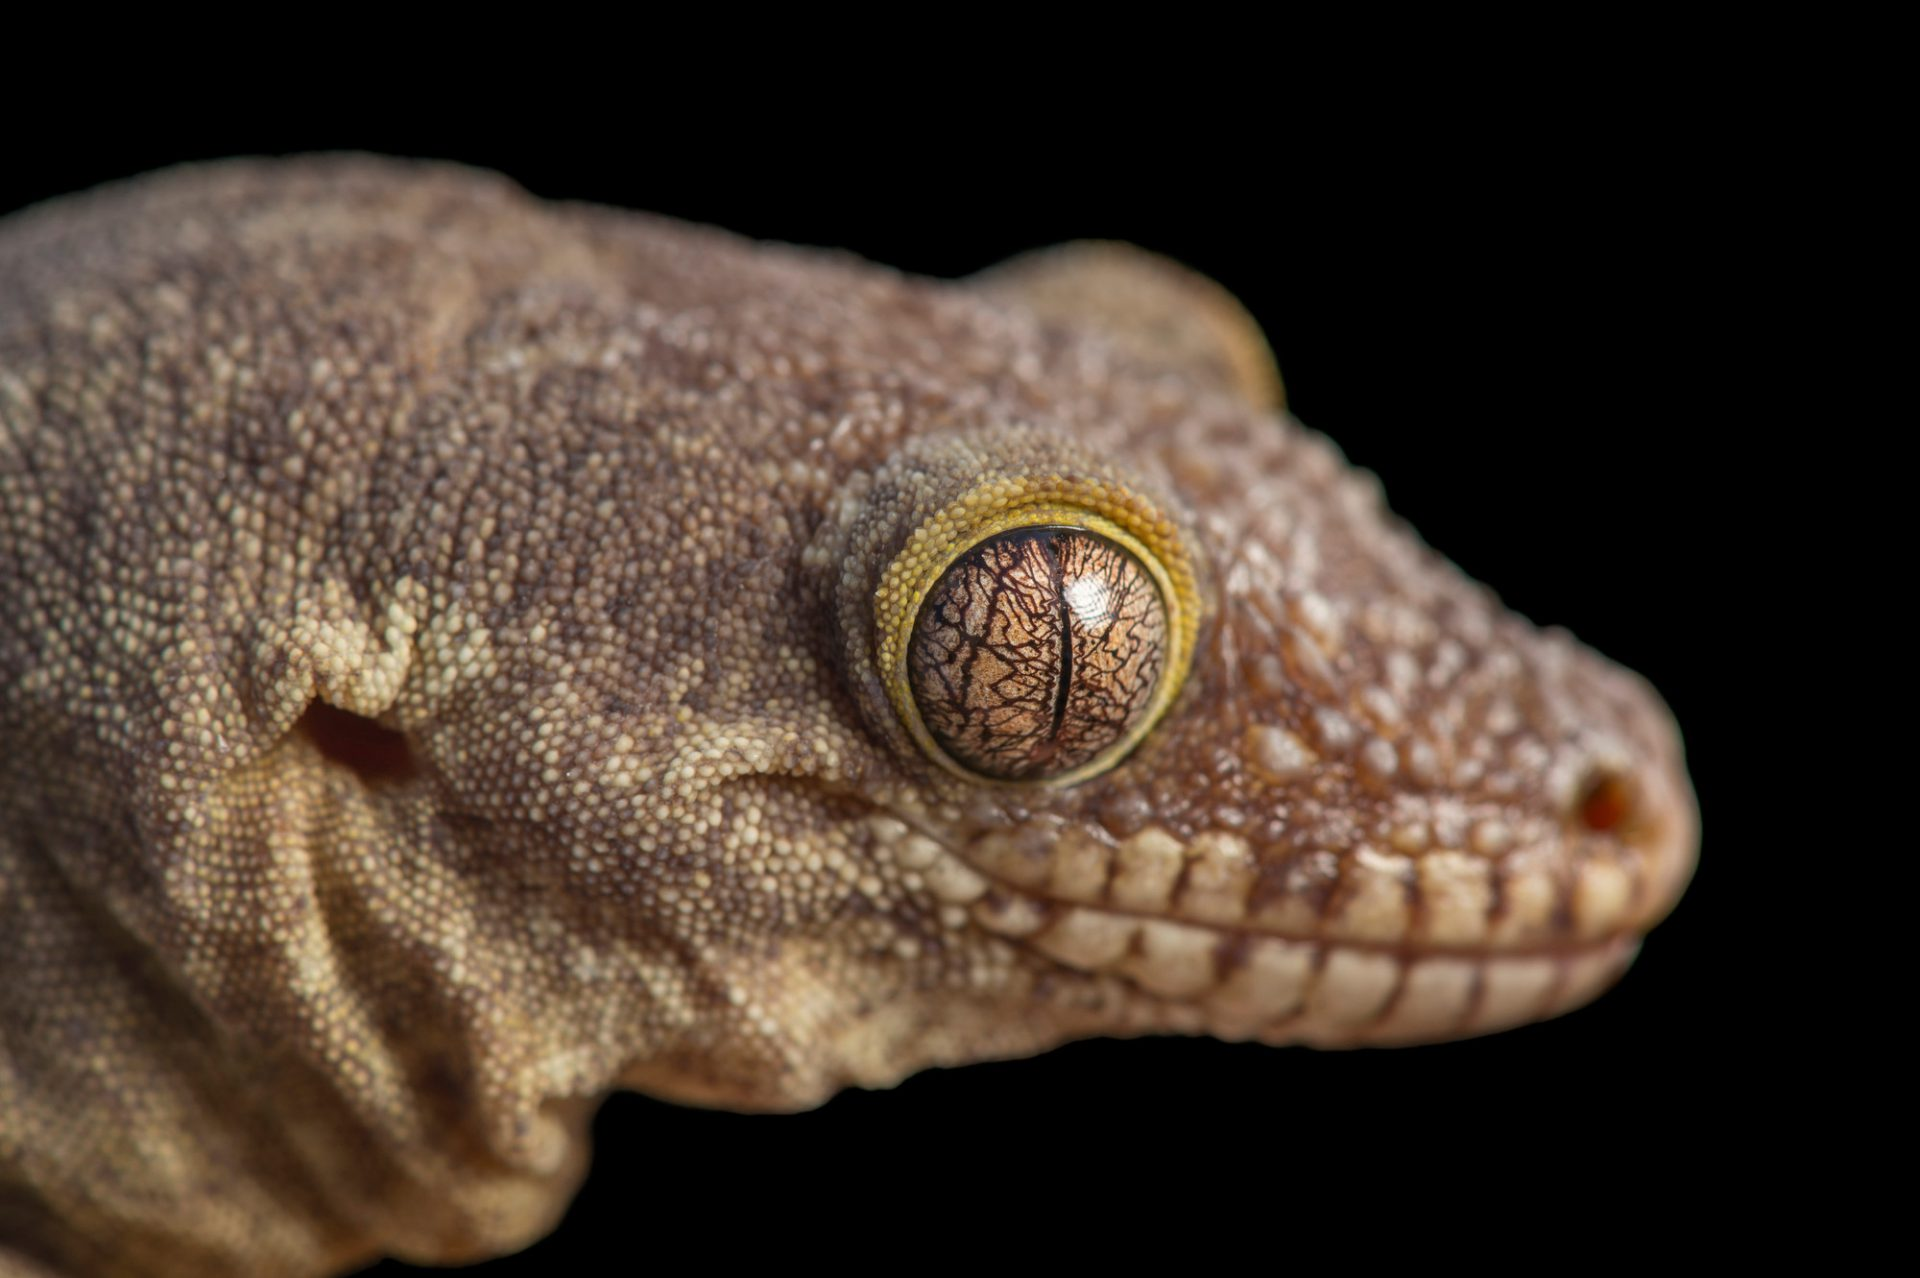 Picture of an endangered rough-snouted giant gecko (Rhacodactylus trachyrhynchus) at the Palm Beach Zoo.